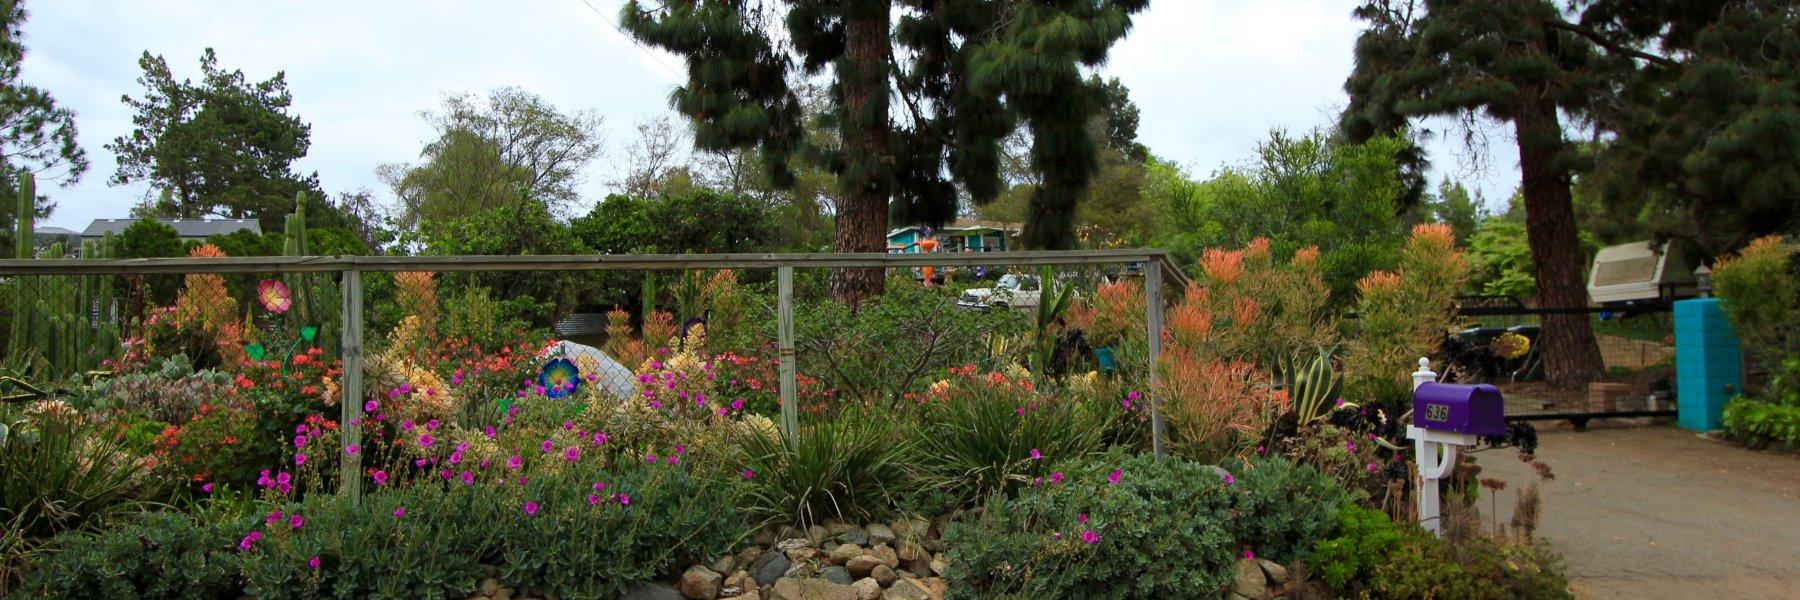 Orleavo Heights is a community of homes in Vista California